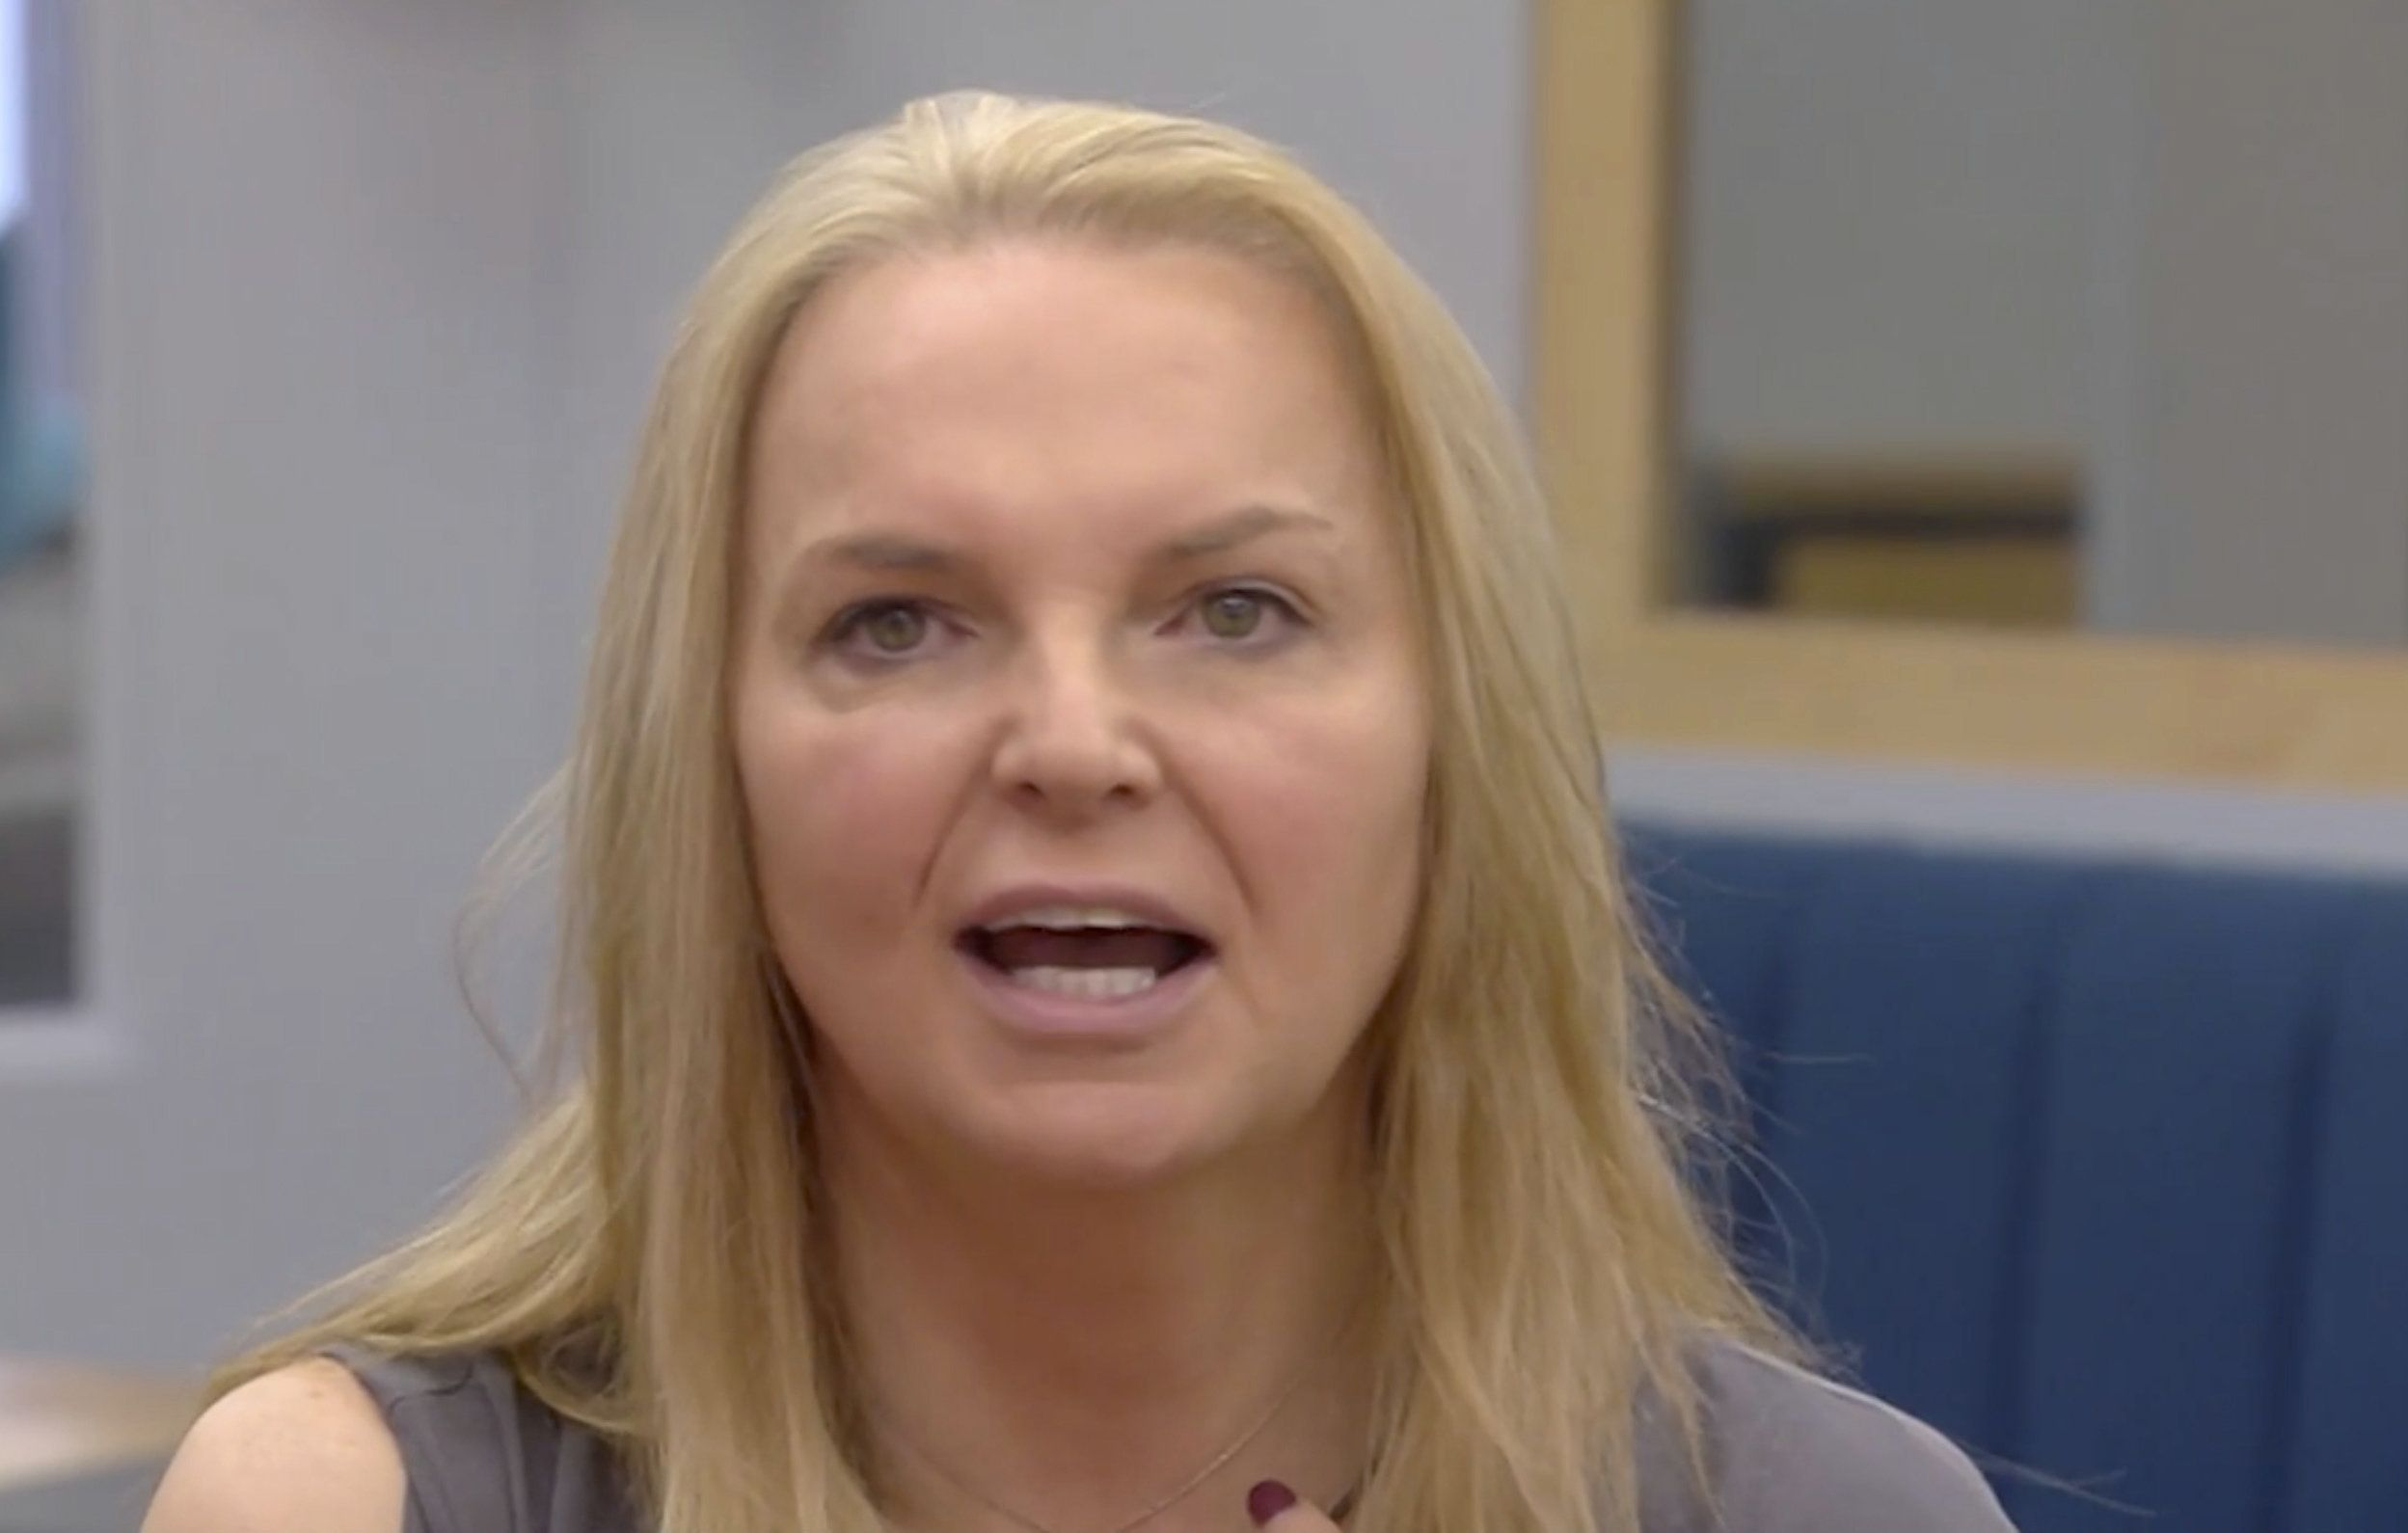 India Willoughby told her 'CBB' housemates she'd been abducted by